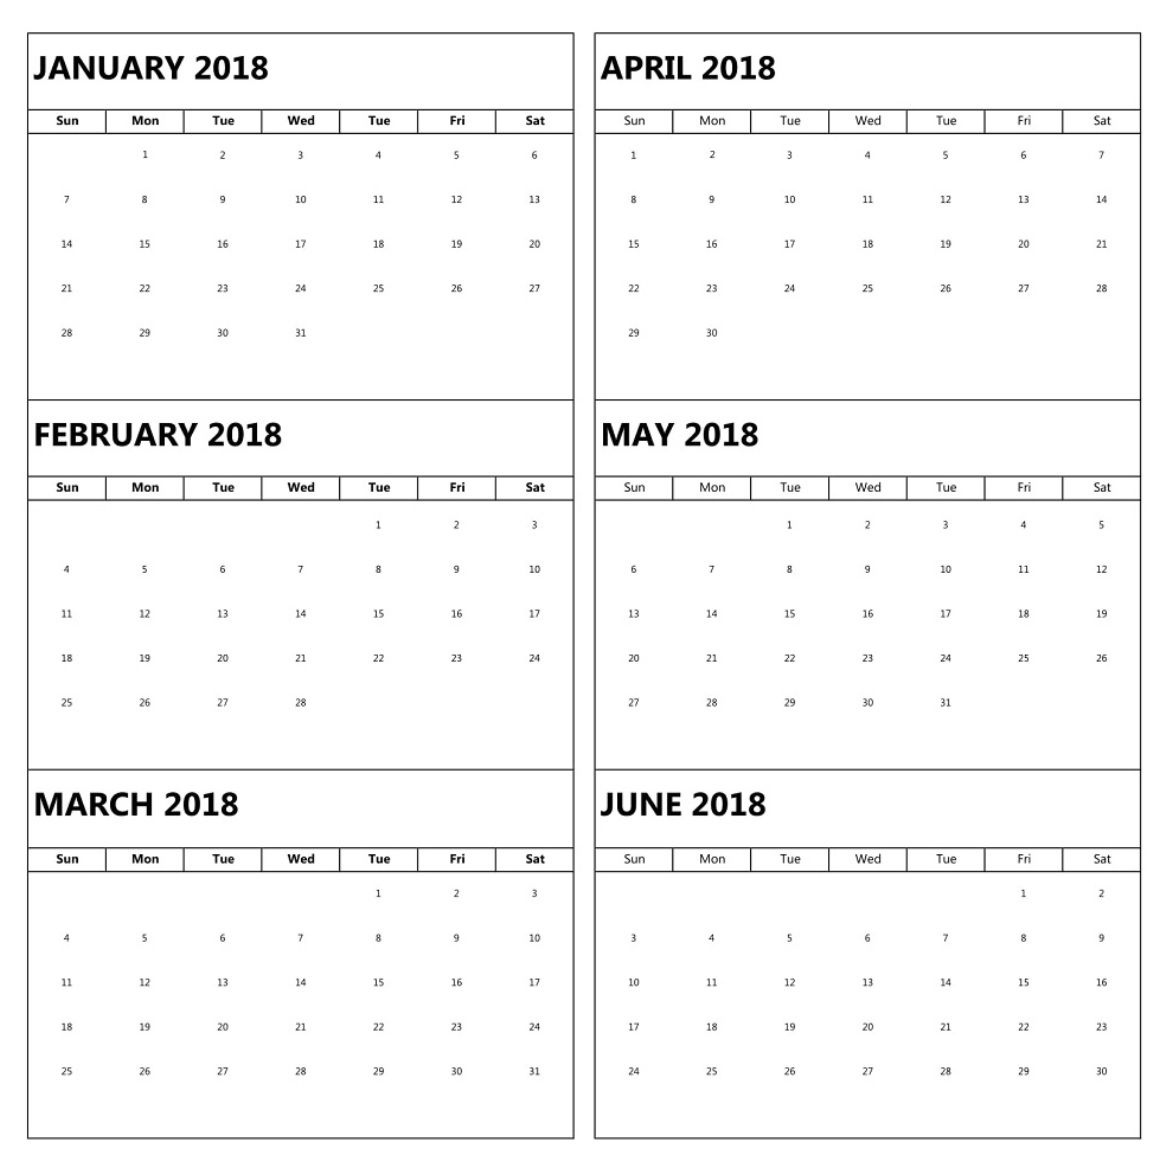 January To June 6 Months Calendar 2018 | Excel Calendar Calenders With 6 Months Showing